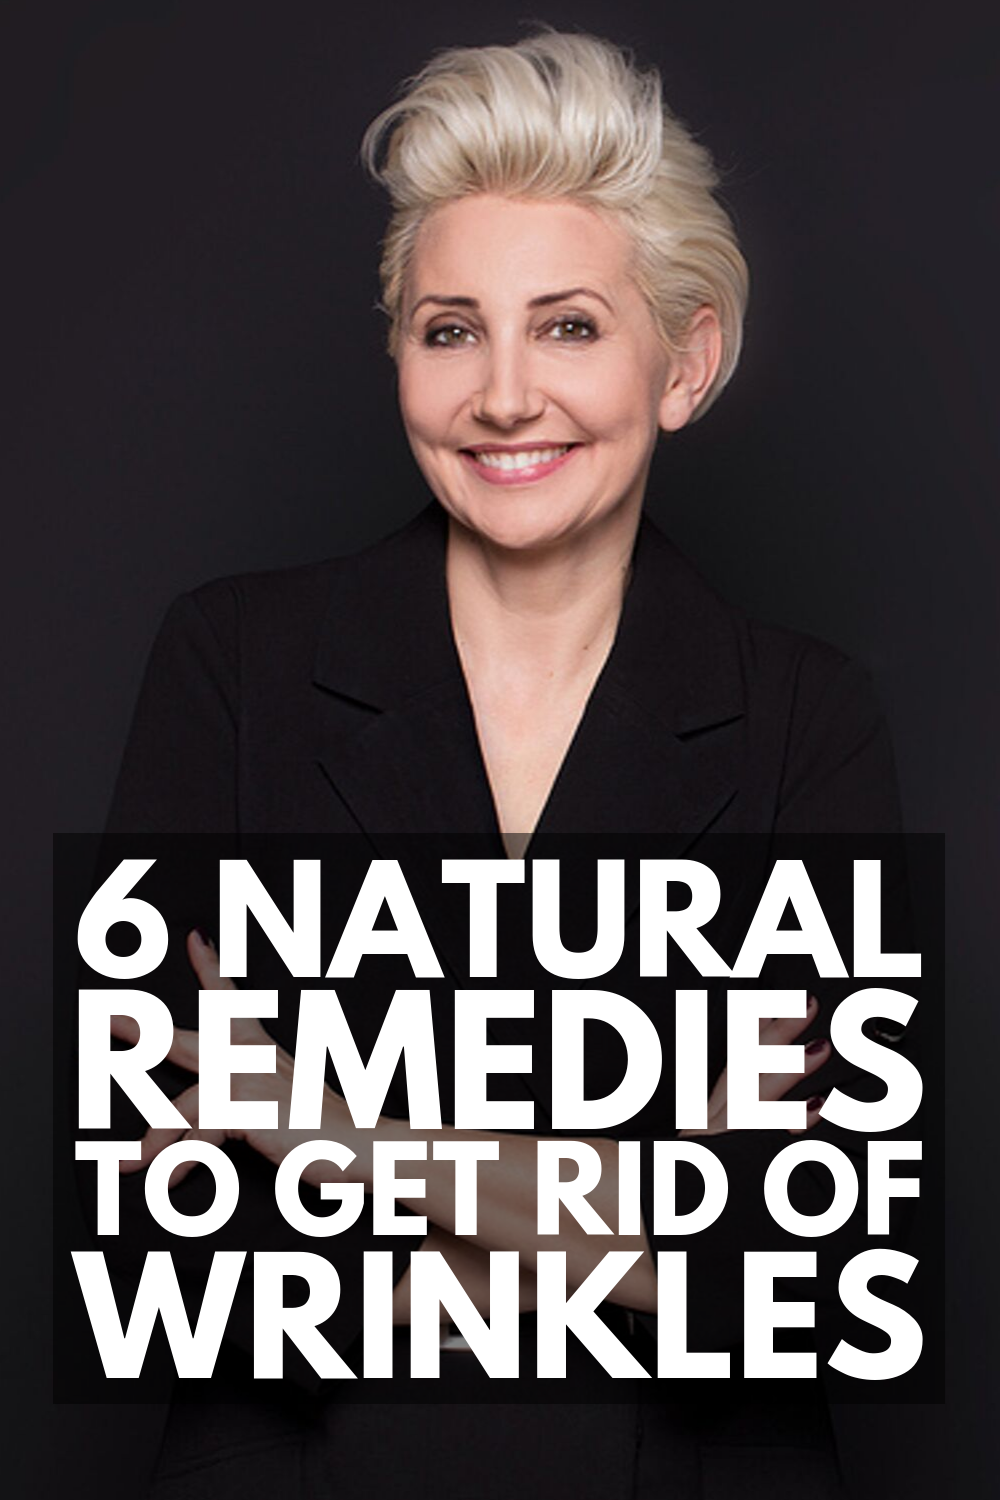 6 Natural Remedies for Wrinkles to Make You Look Younger